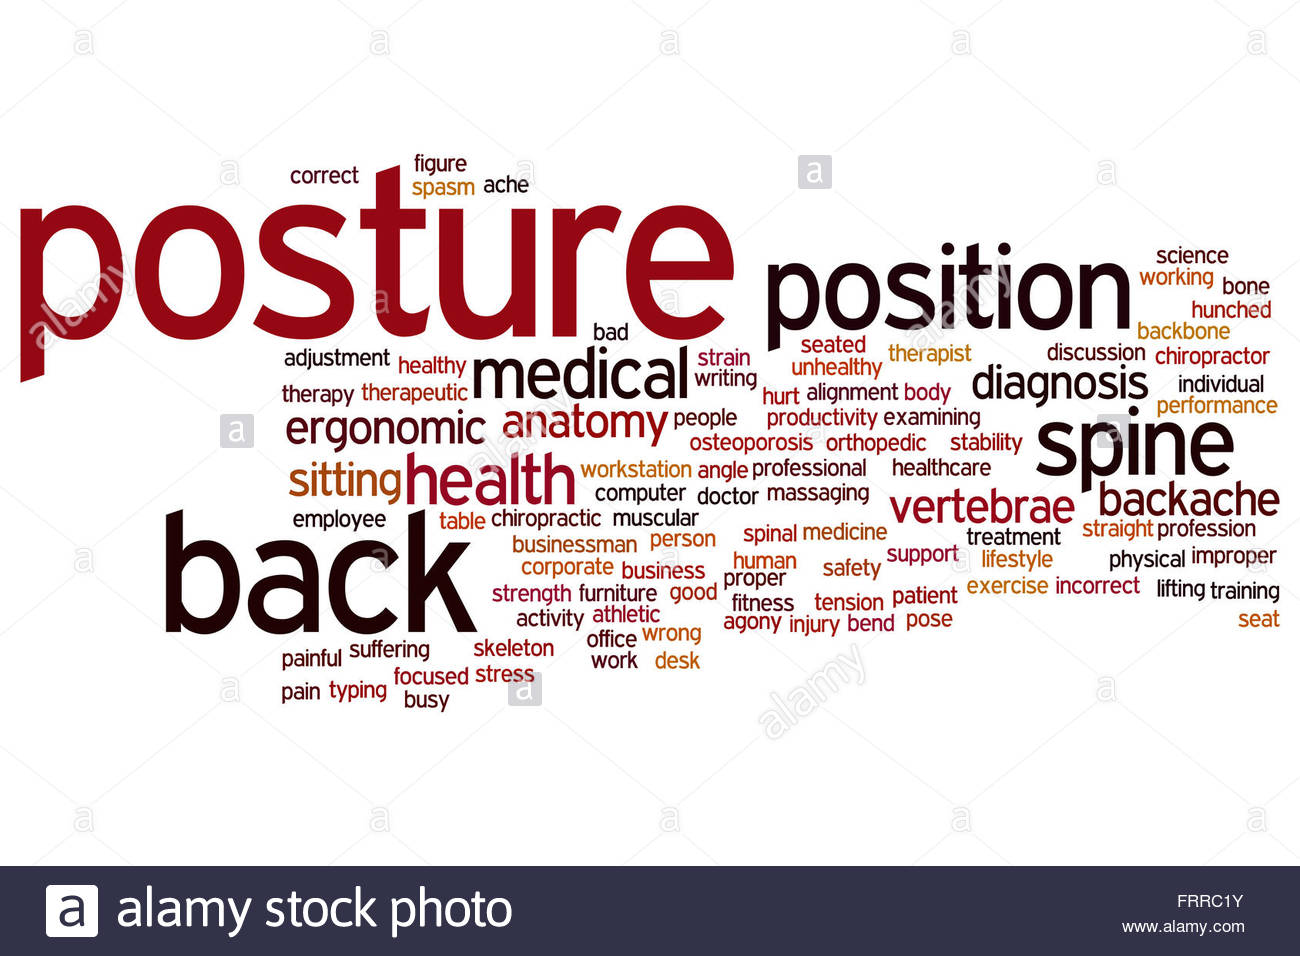 Posture concept word cloud background Stock Photo 100703287   Alamy 1300x956